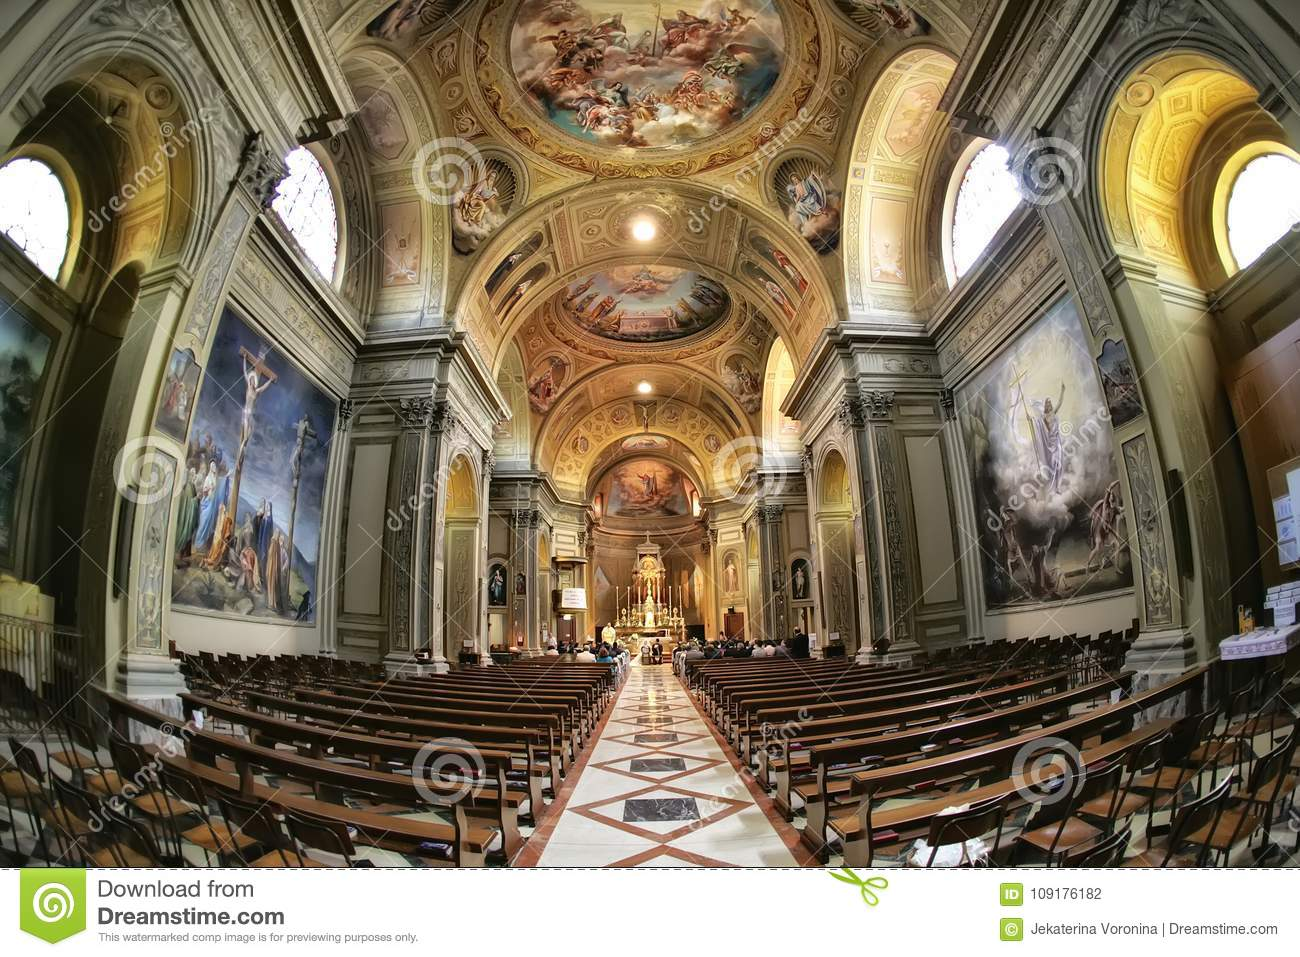 Wedding ceremony in the church in Rome